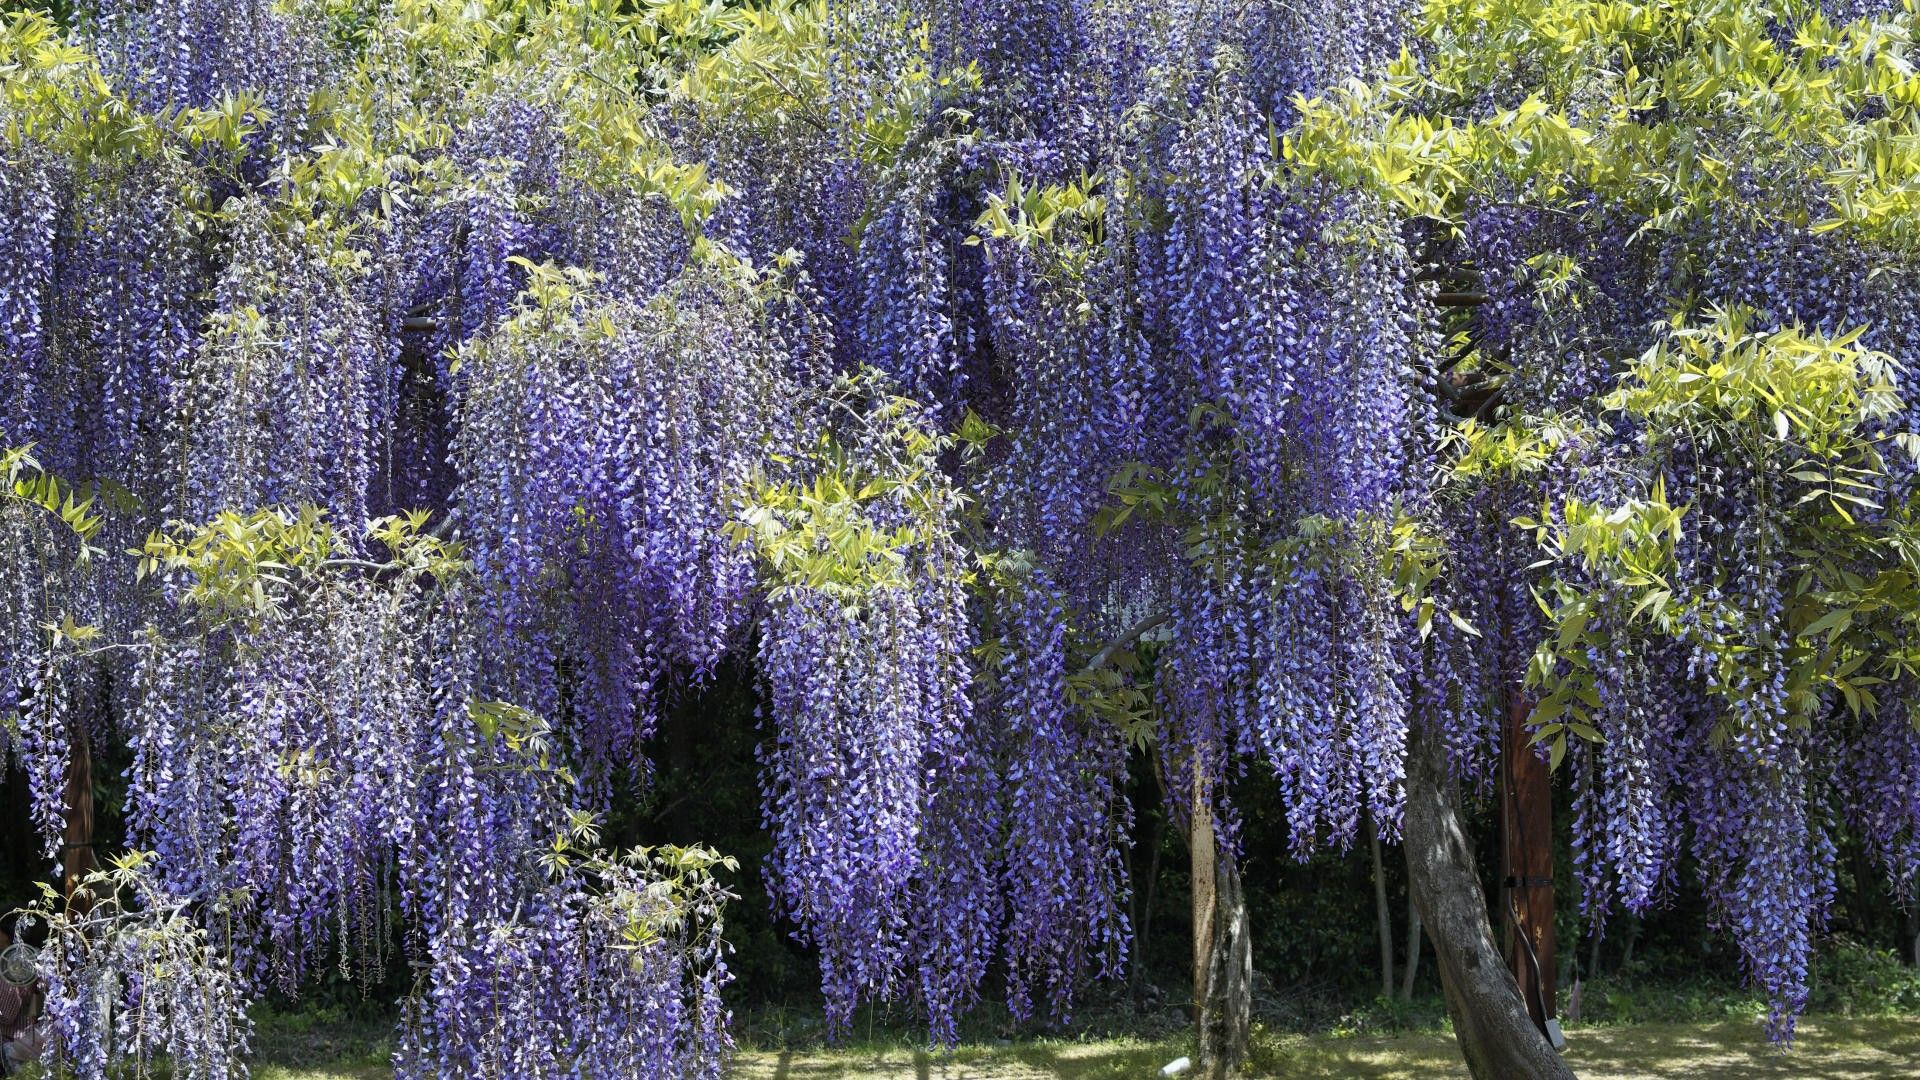 Hanging vine flower images japan flowers hanging wisteria hanging vine flower images japan flowers hanging wisteria parks purple flowers vines 397132 35 mightylinksfo